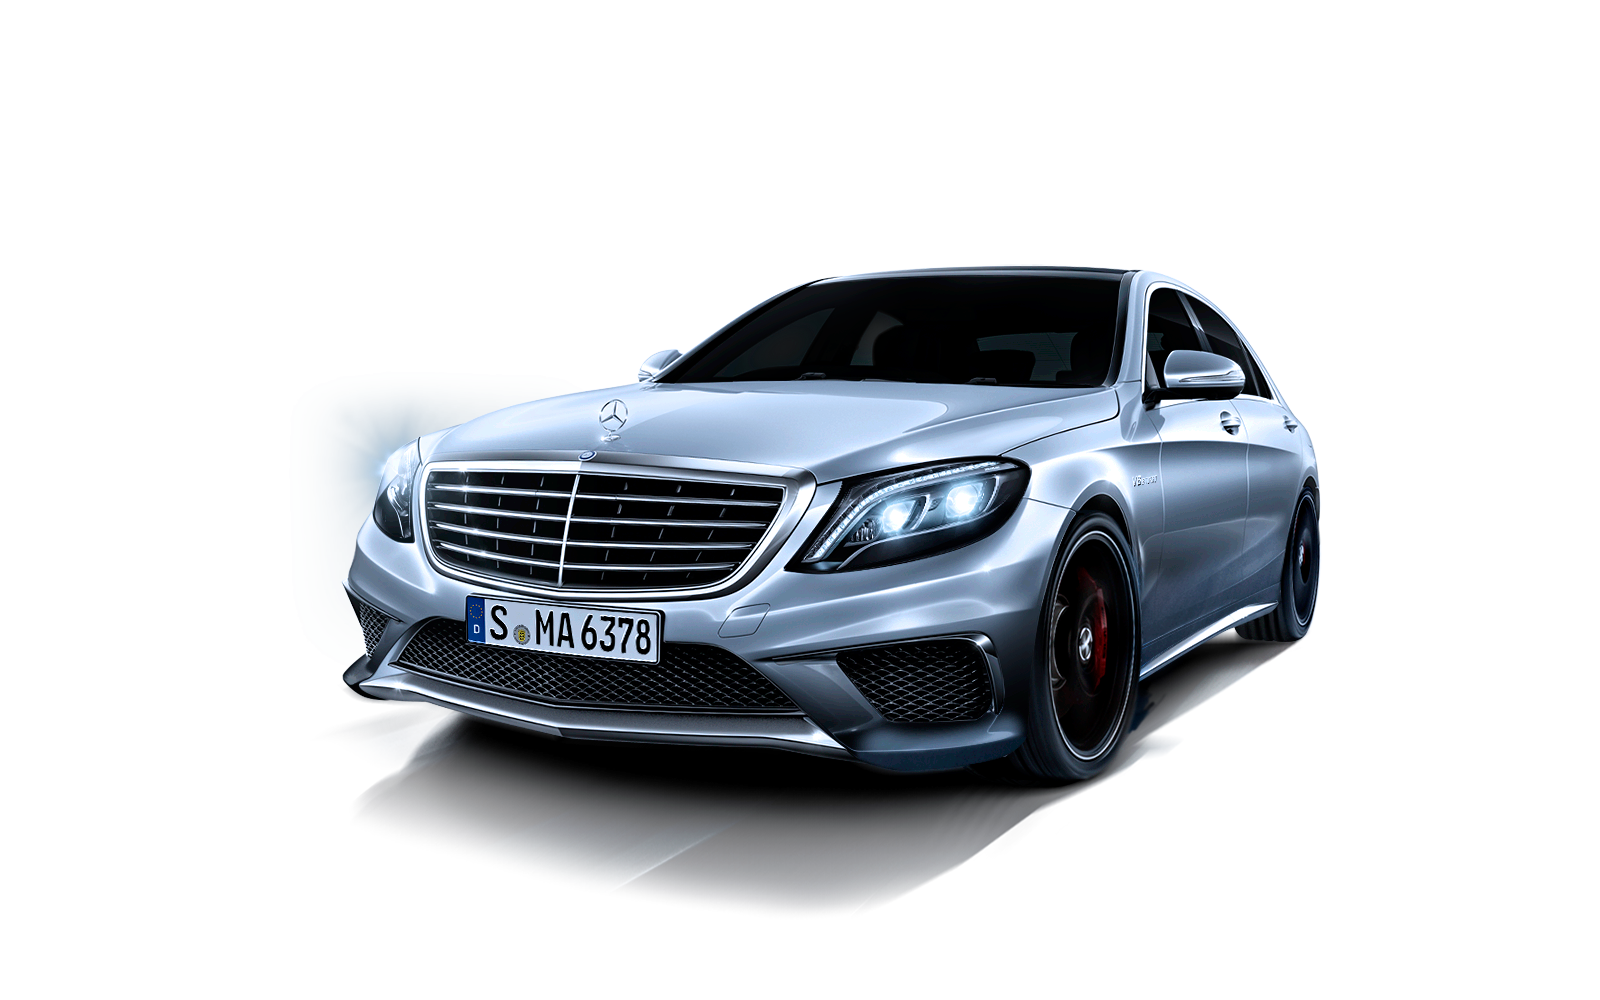 Free Icons Png:Mercedes Car PNG Image - Mercedes PNG